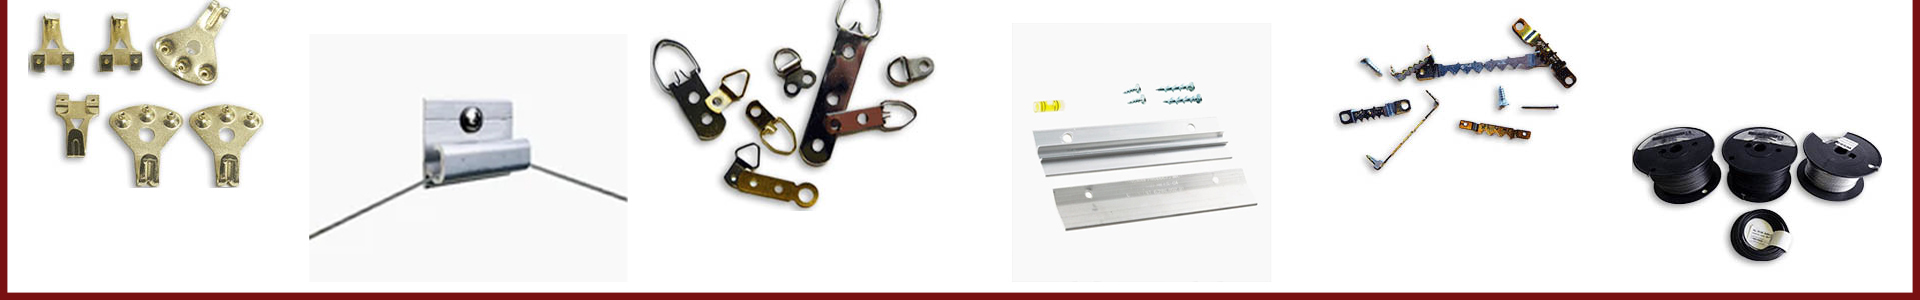 woodworking and picture framing hardware | Bear Woods Supply